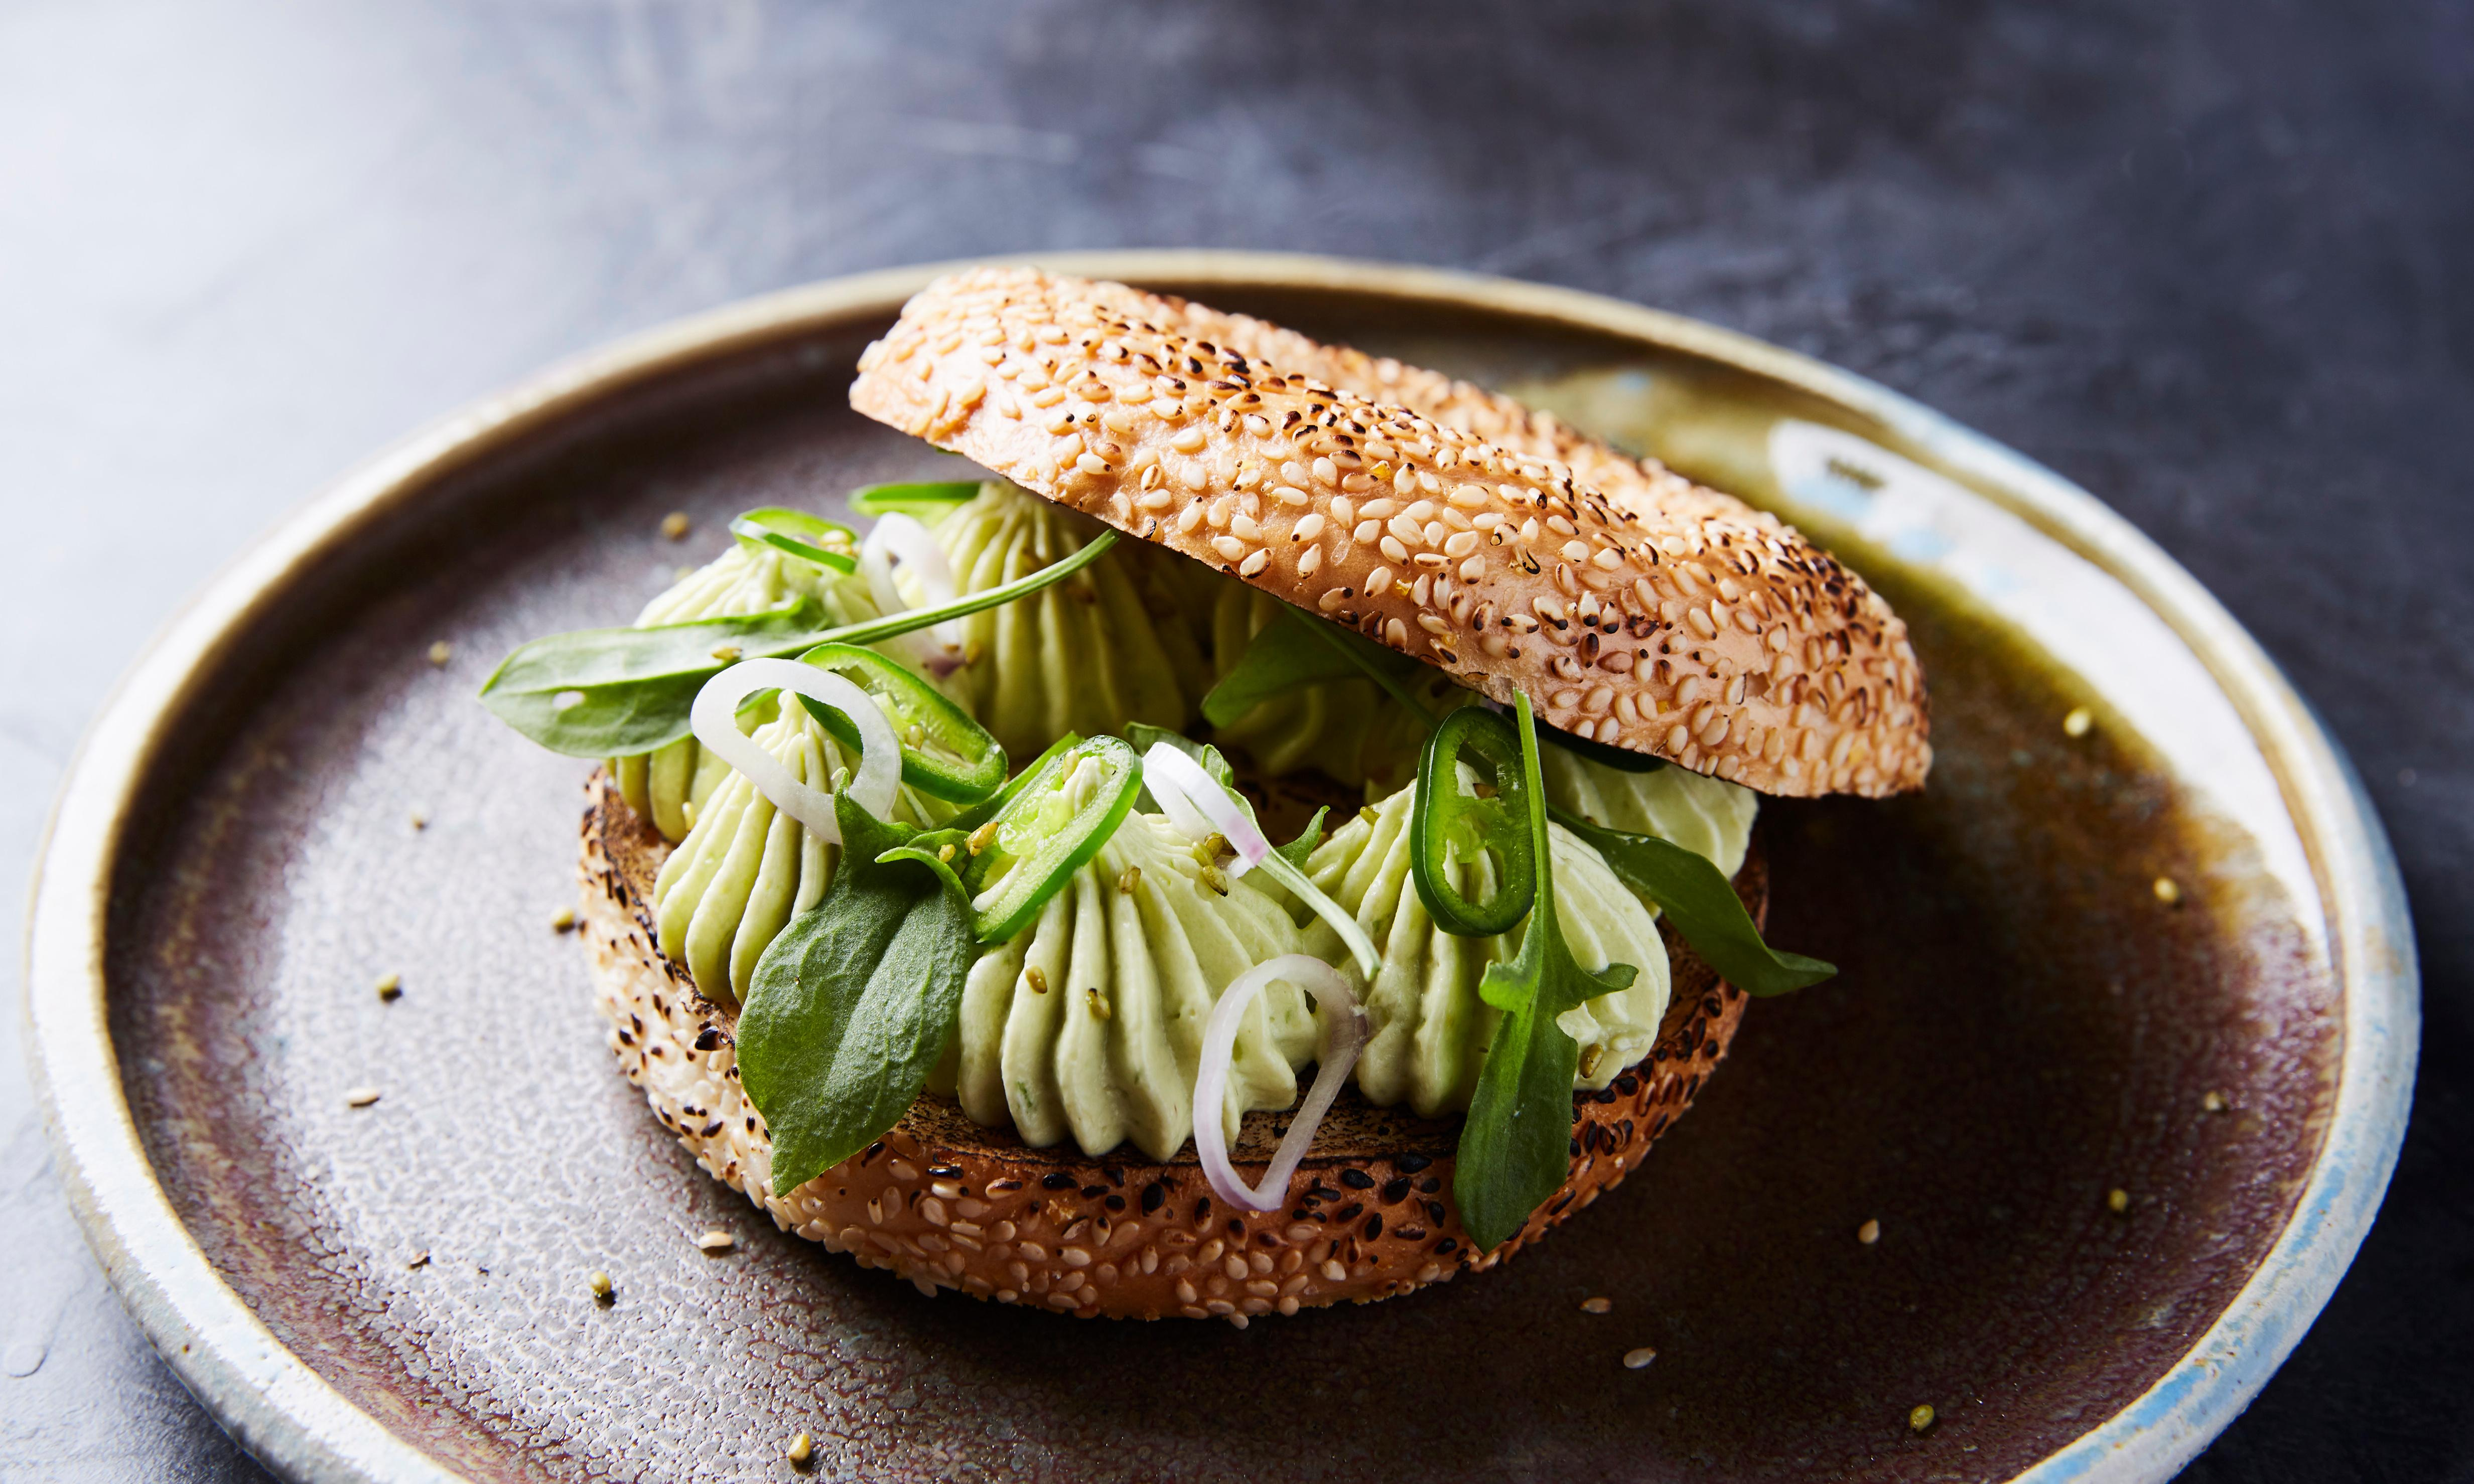 Peter Gunn's sesame bagel with avocado, goat's cheese, green chilli and sorrel recipe